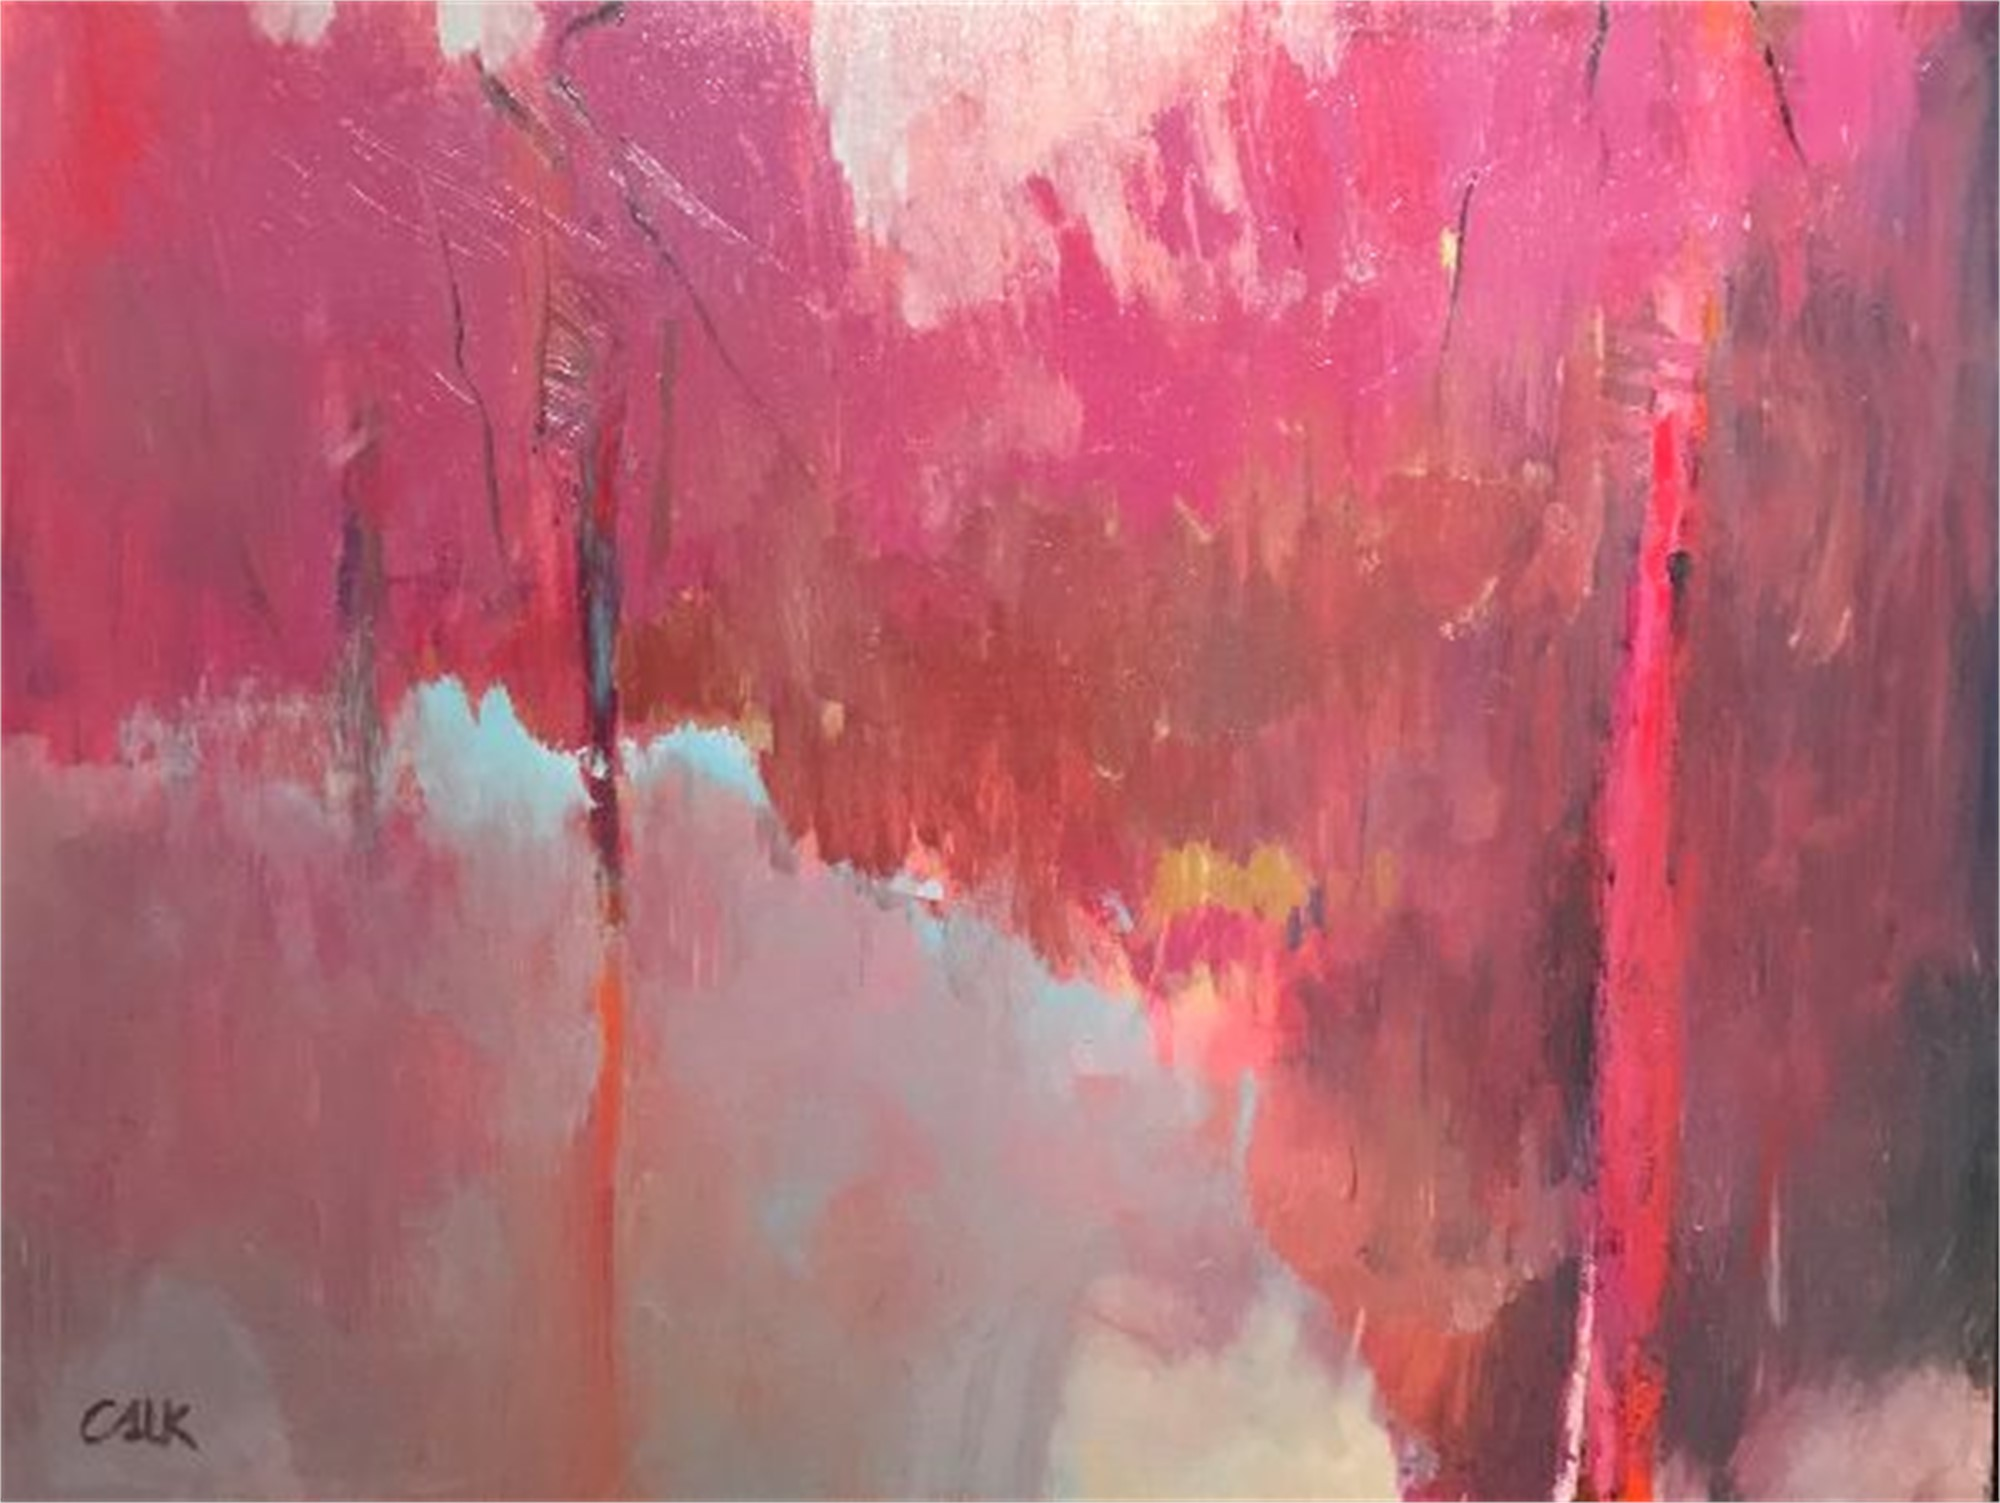 River Series by James Calk